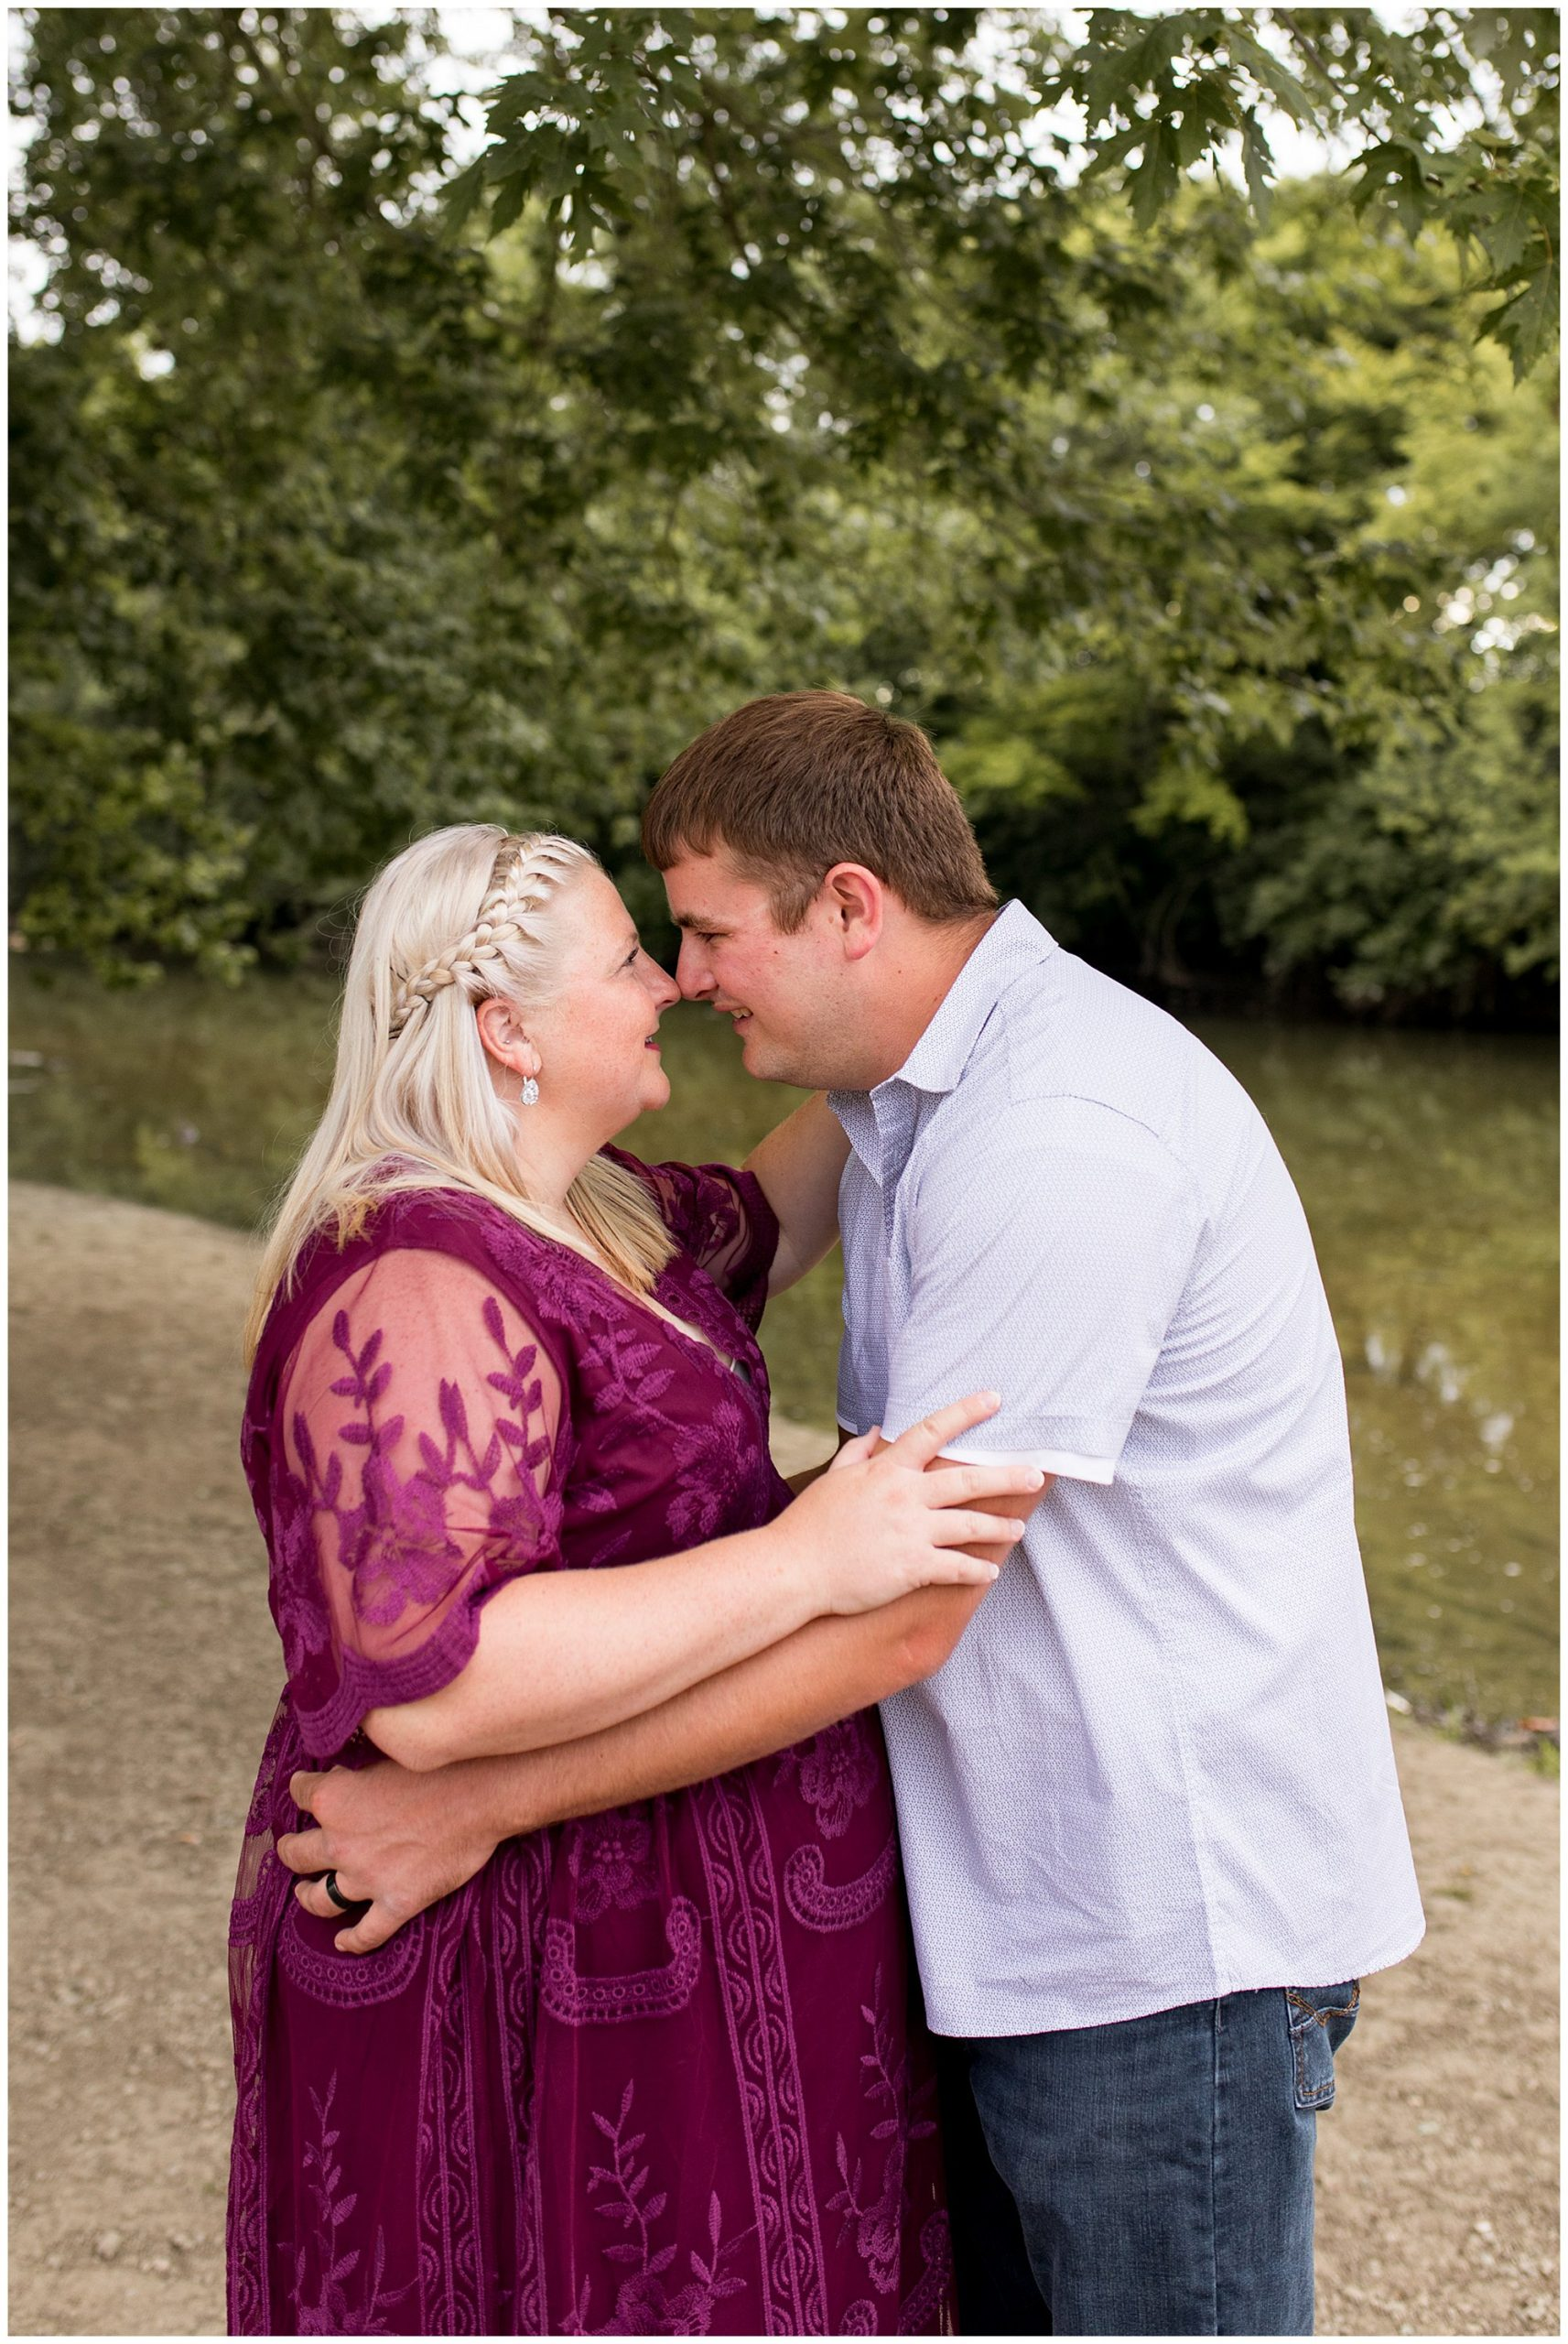 Muncie Indiana maternity session at Morrow's Meadow Park